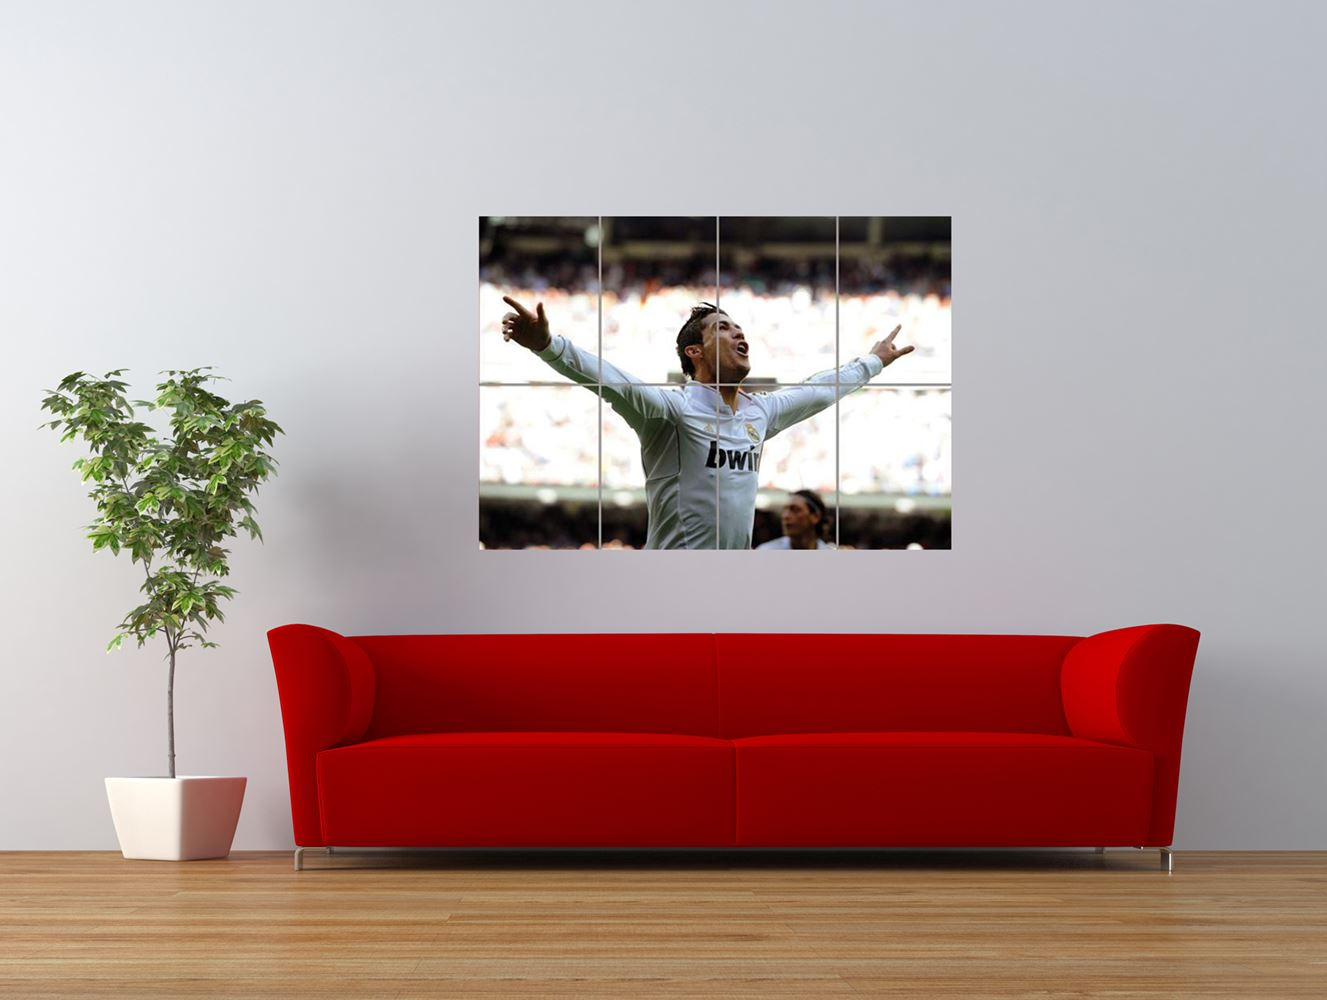 CRISTIANO-RONALDO-REAL-MADRID-FOOTBALL-GIANT-ART-PRINT-PANEL-POSTER-NOR0211